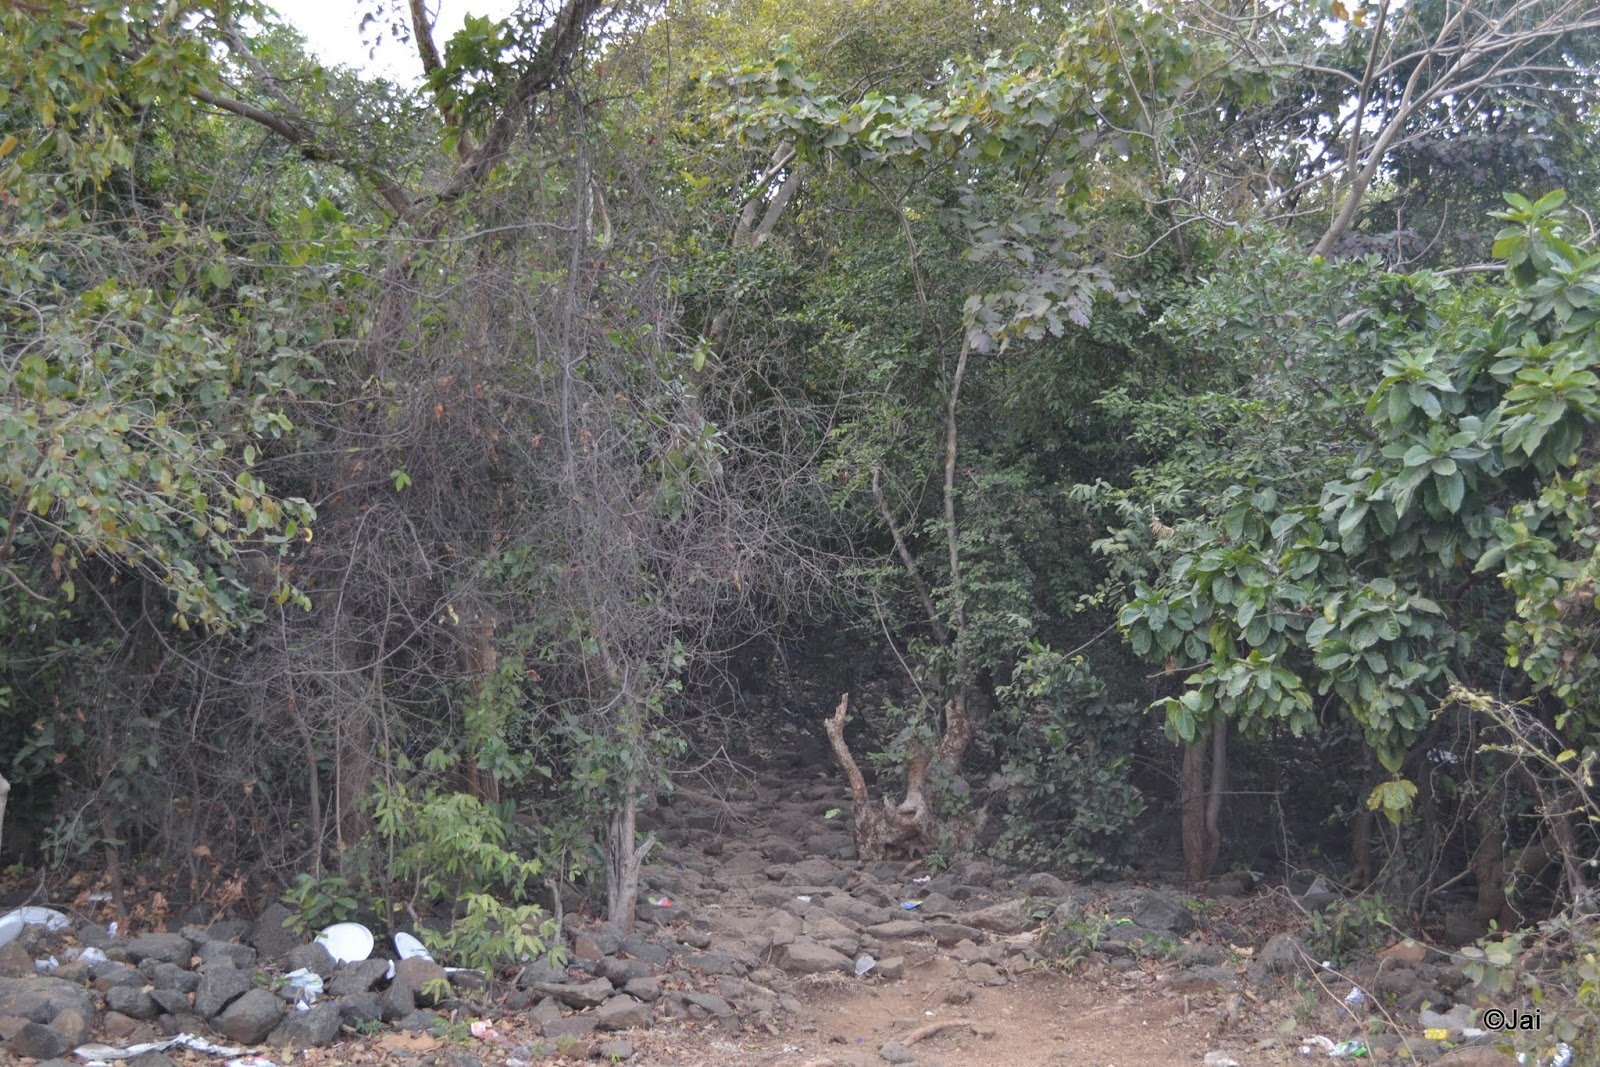 Dense forest on the island inside maithon dam